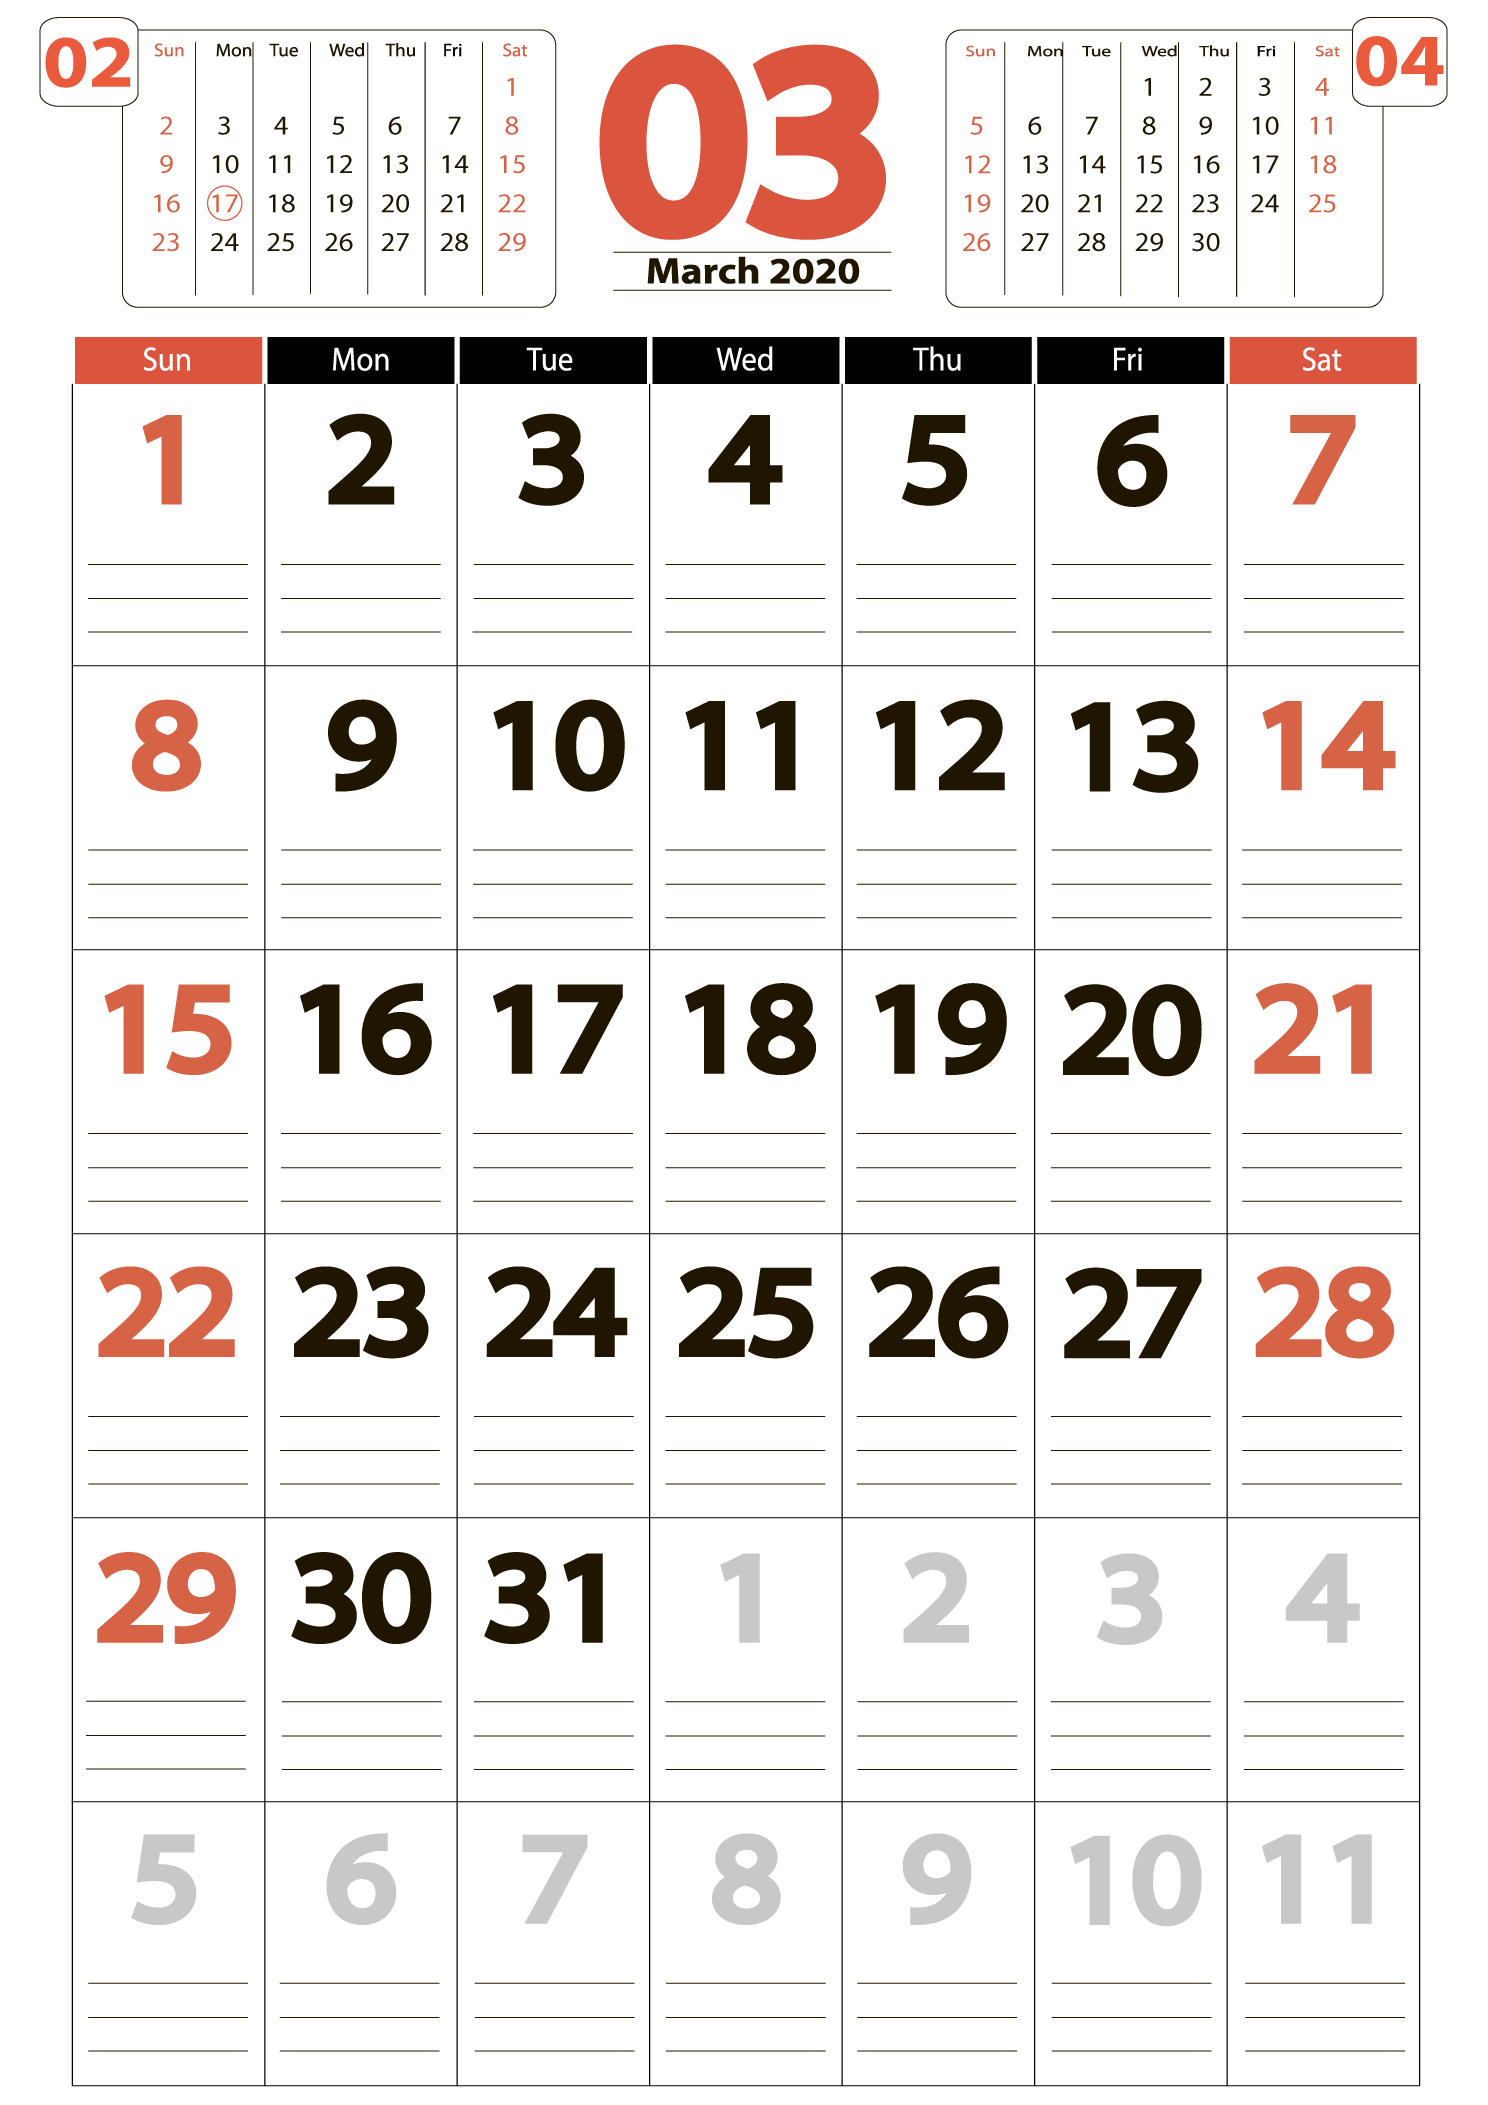 Download calendar march 2020